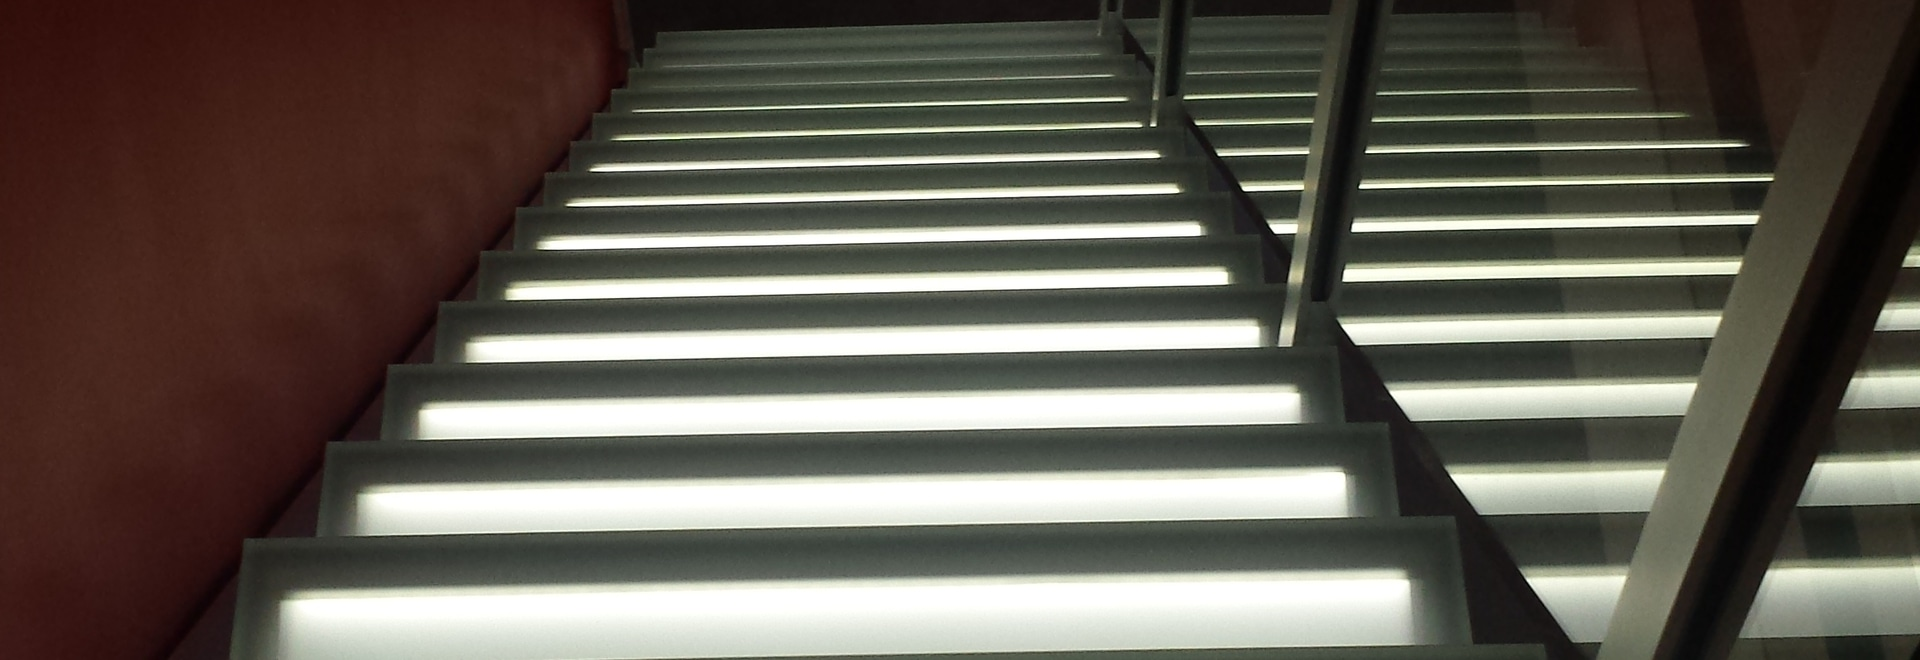 design stair with leds